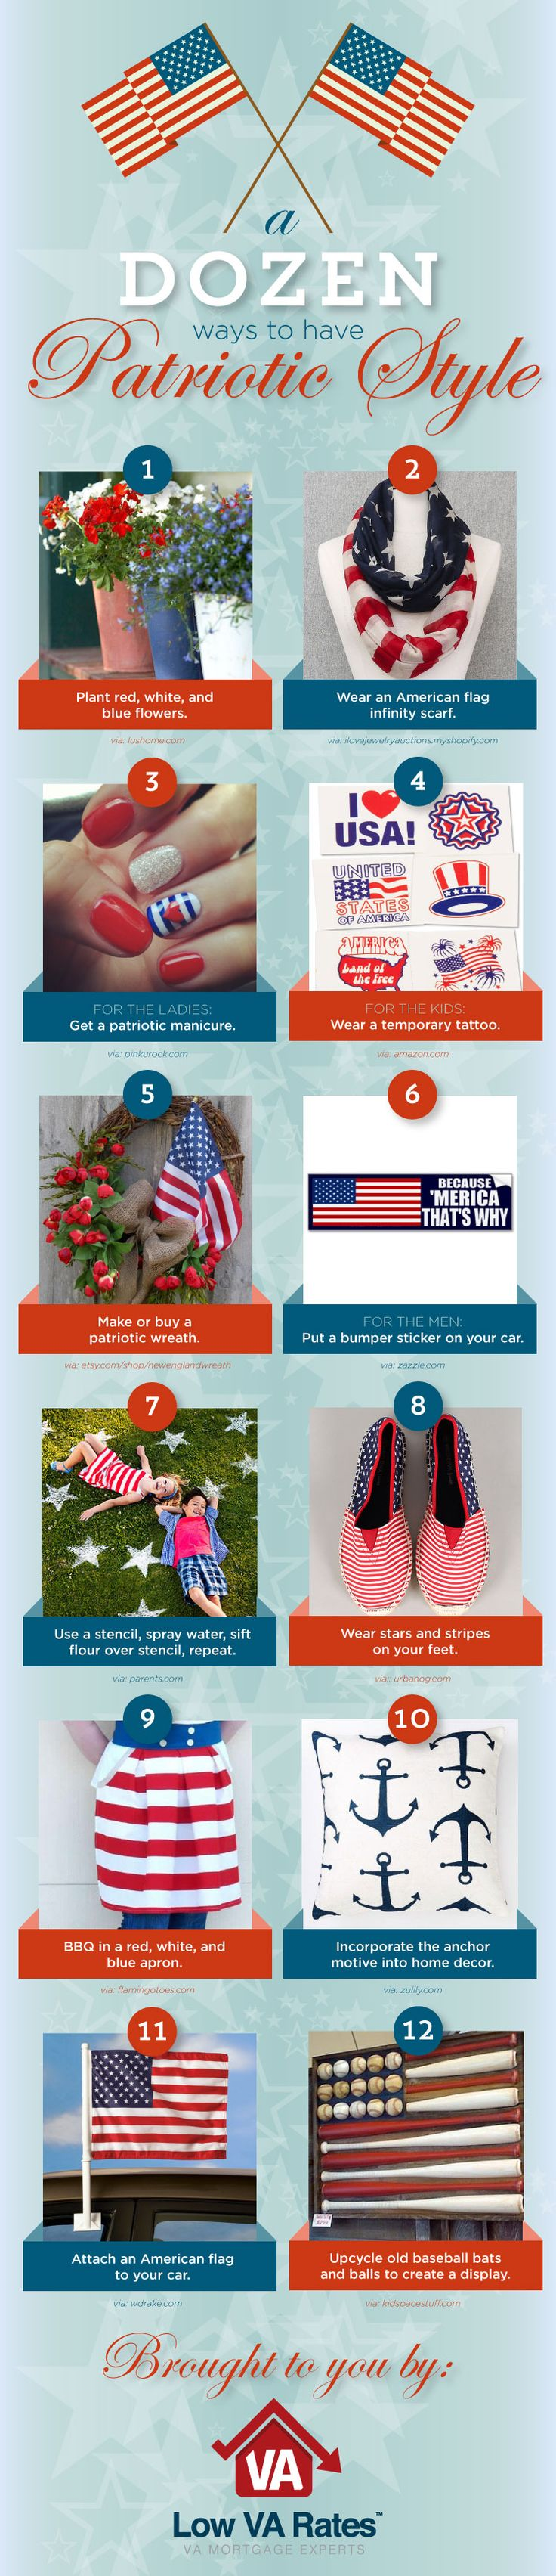 Blue apron general counsel